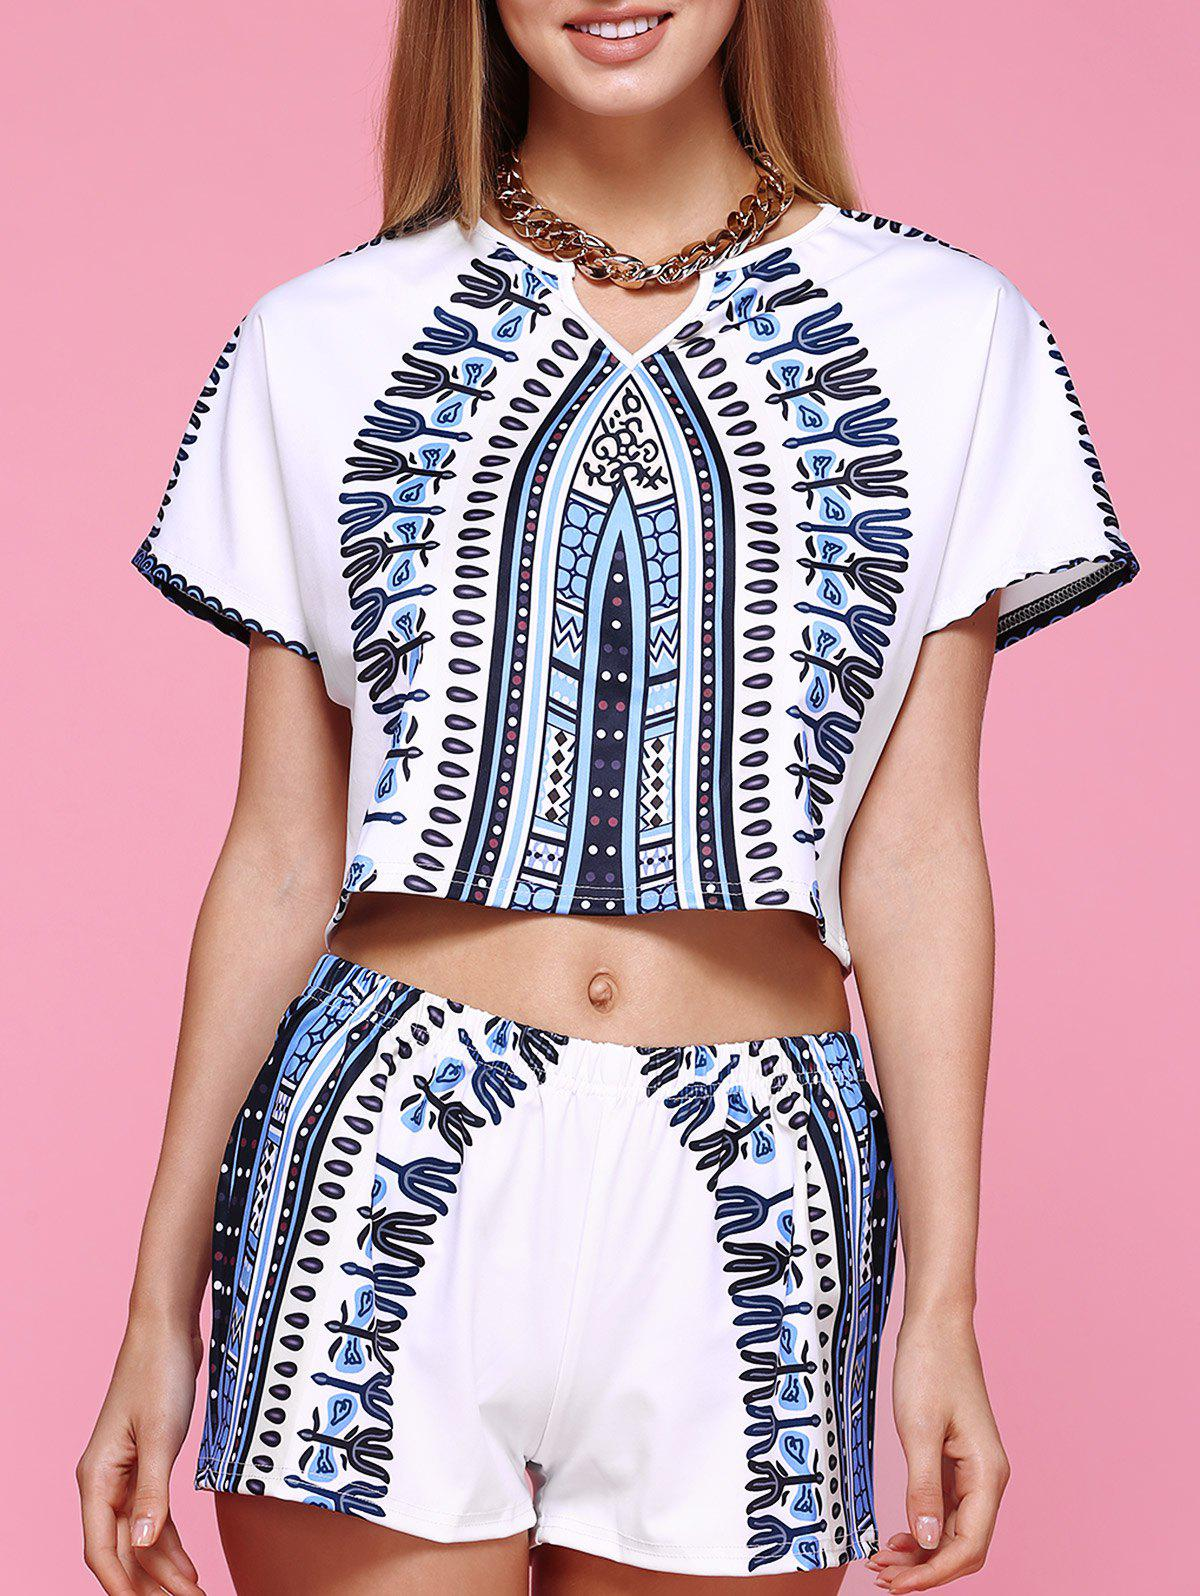 Chic Short Sleeve Printed Crop Top + Elastic Waist Shorts Women's Twinset - XL WHITE